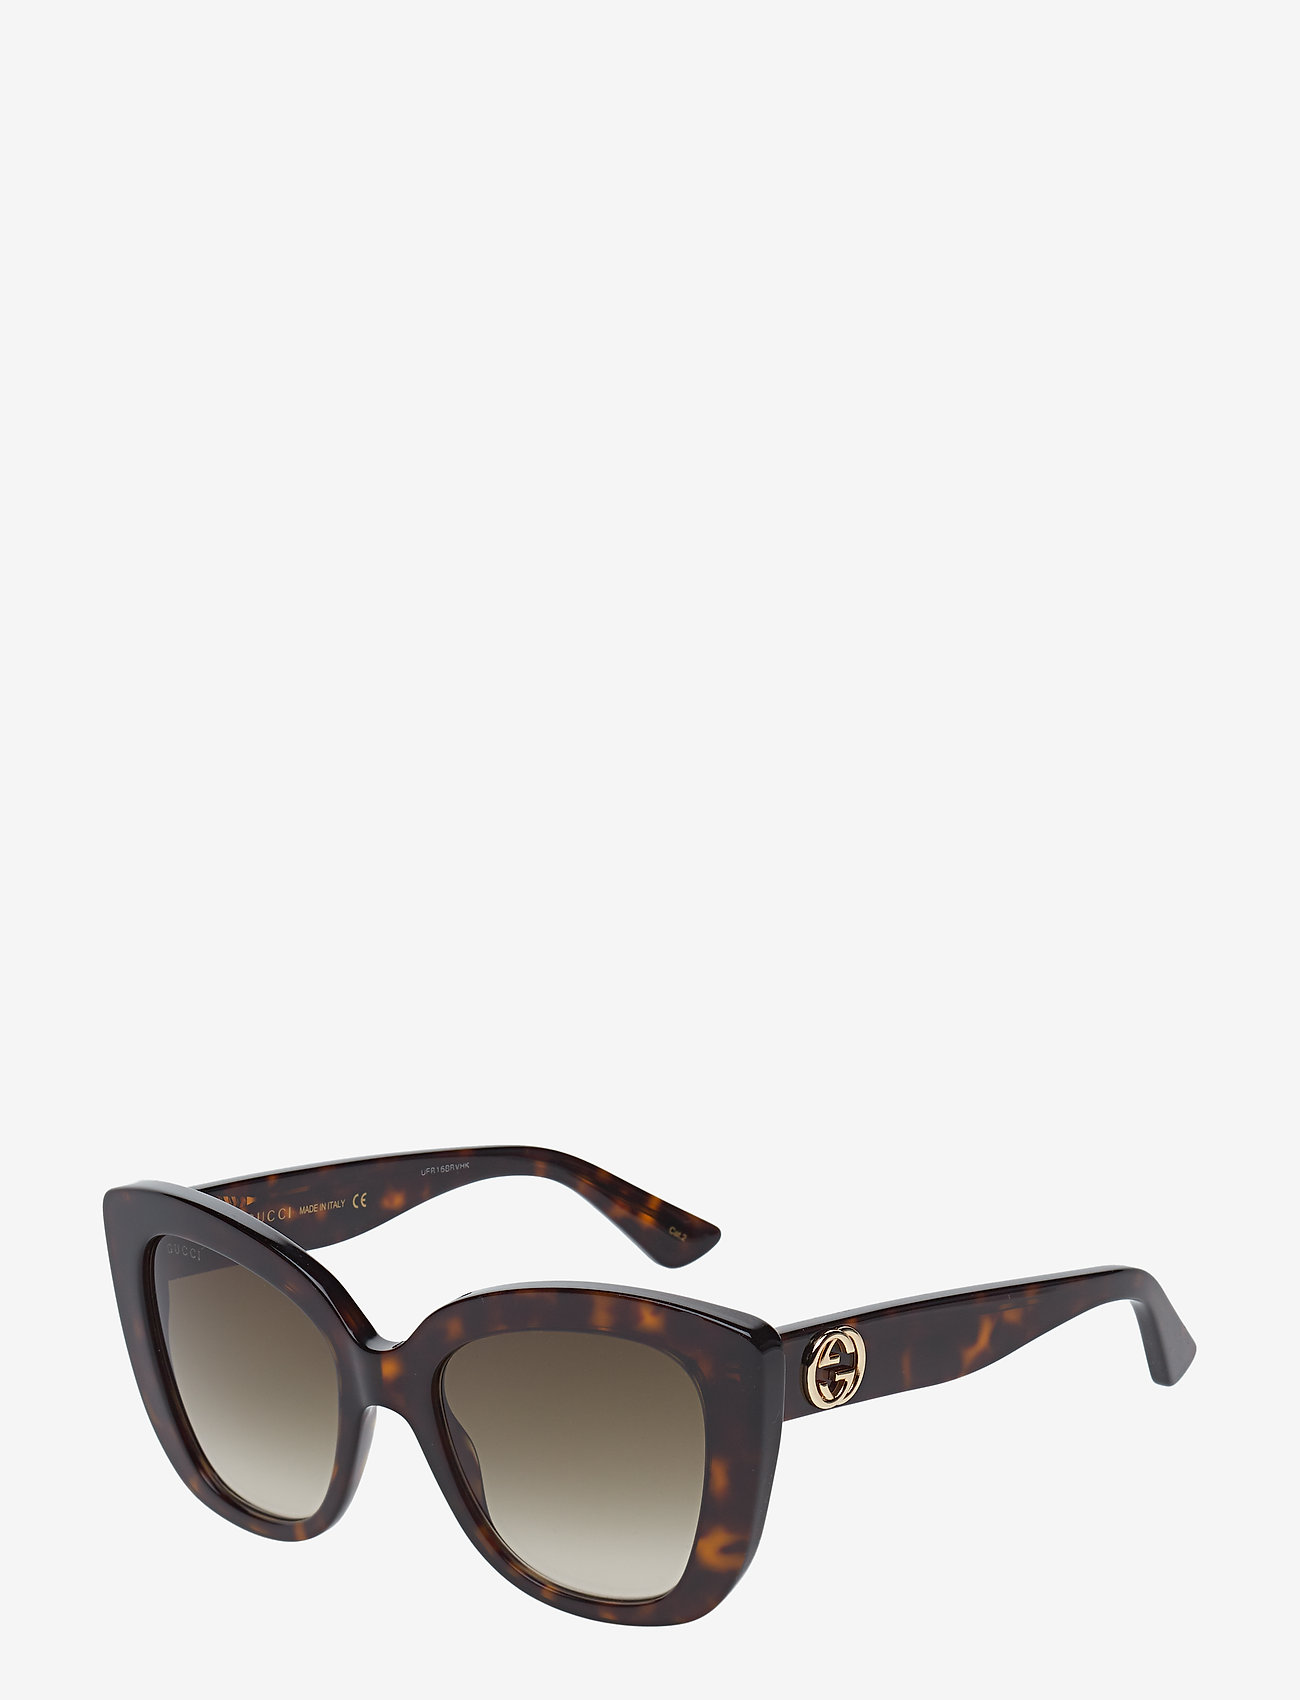 Gucci Sunglasses - GG0327S - cat-eye - havana-havana-brown - 1